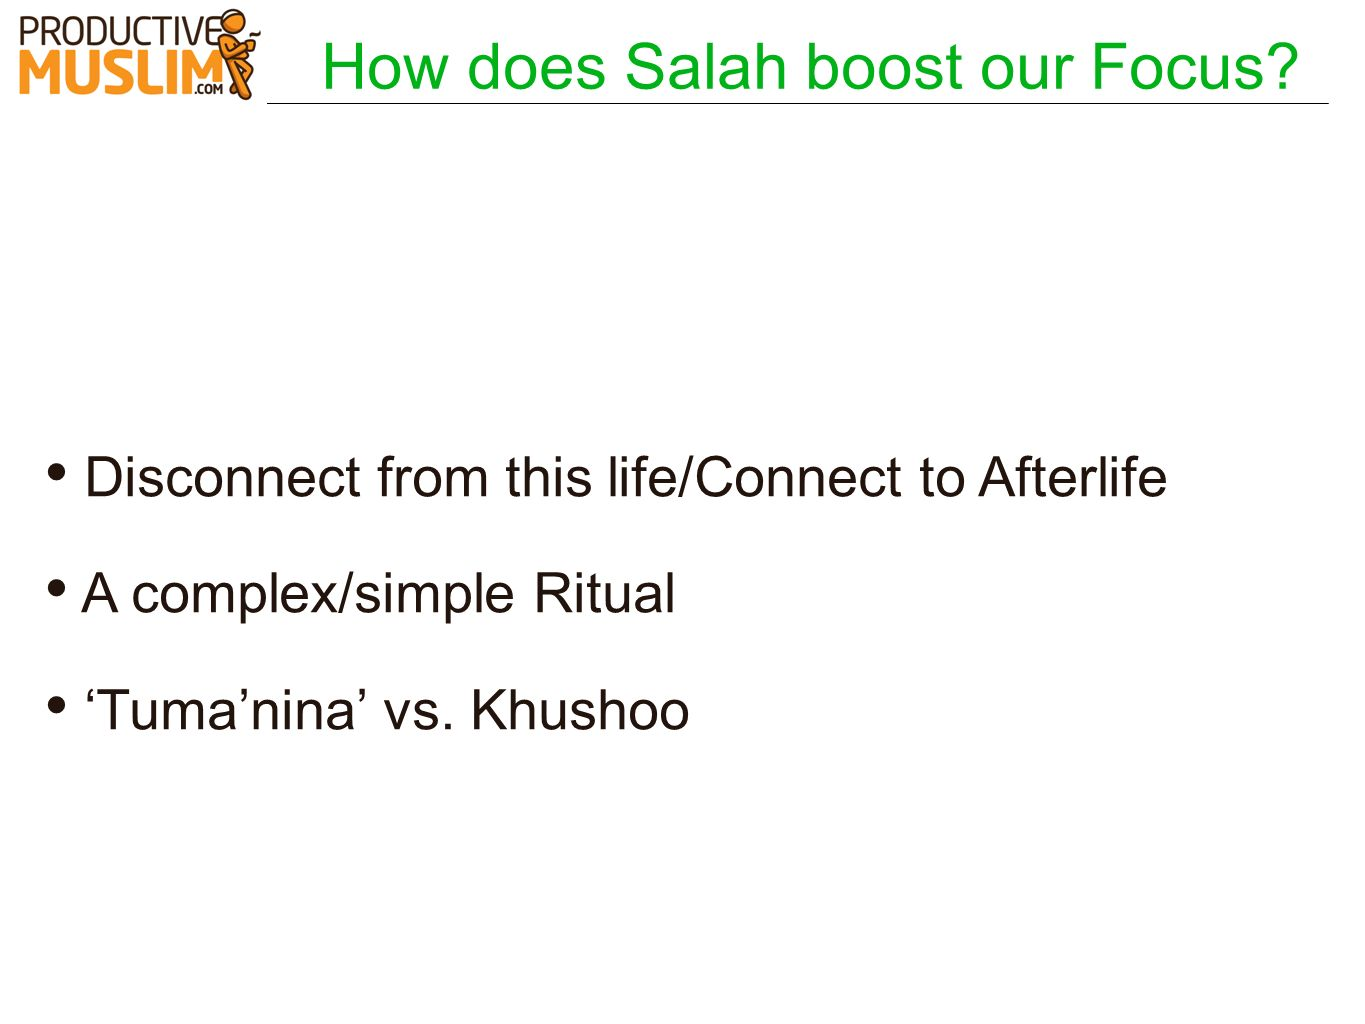 How does Salah boost our Focus